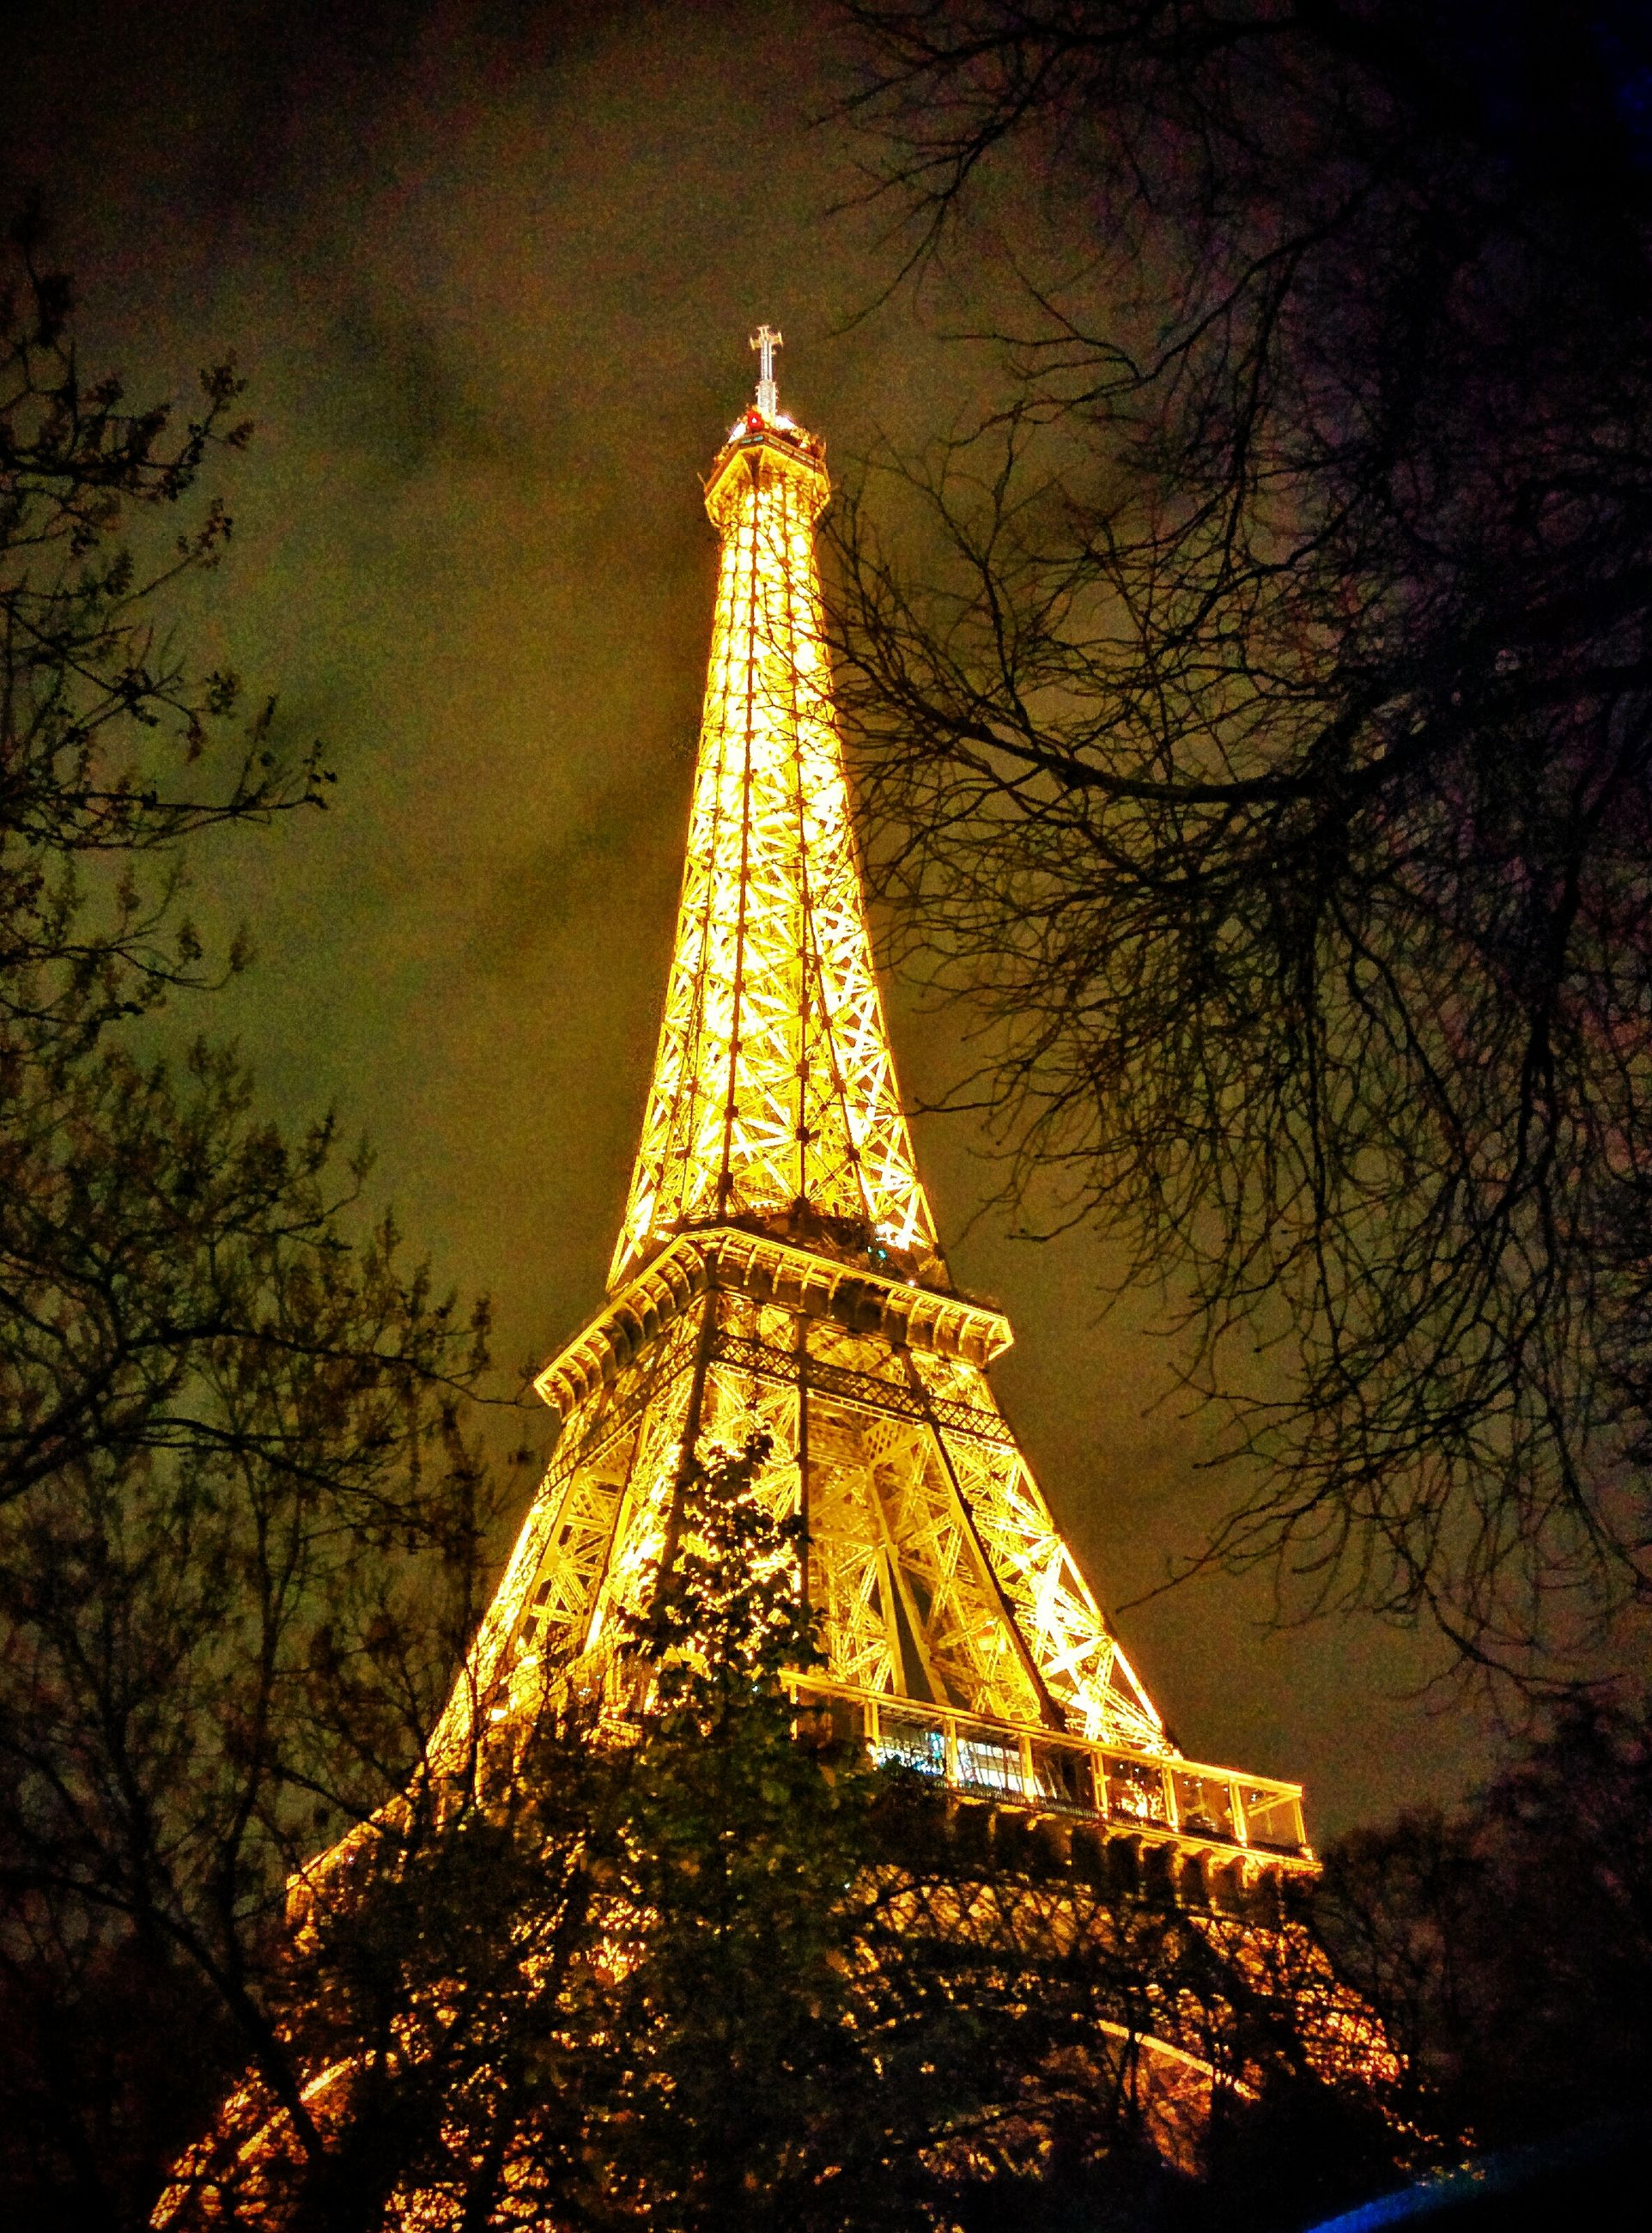 architecture, built structure, famous place, eiffel tower, tower, international landmark, travel destinations, tall - high, tourism, capital cities, travel, building exterior, low angle view, tree, culture, city, sky, spire, illuminated, architectural feature